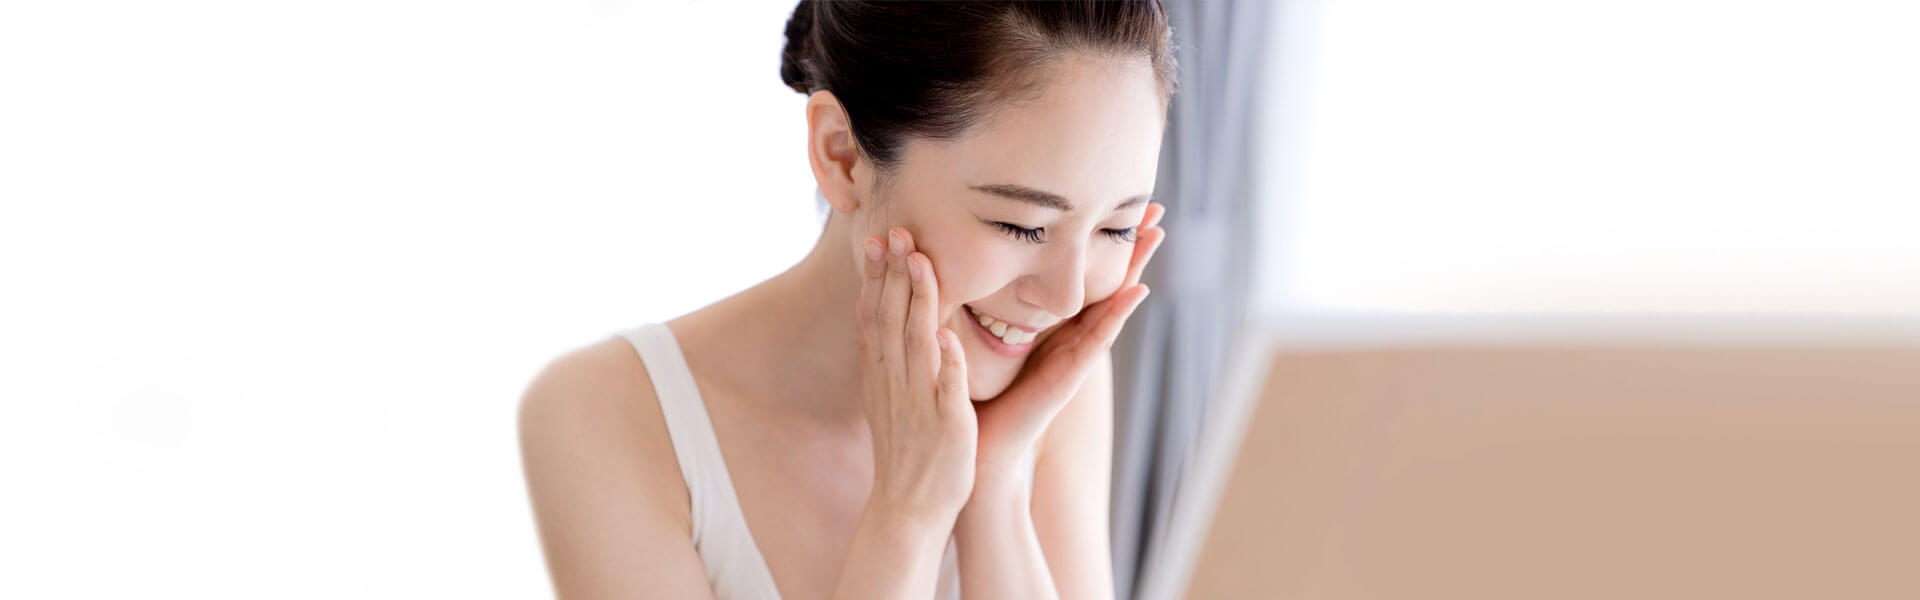 Improve Your Smile With Help of Cosmetic Dentistry Procedures